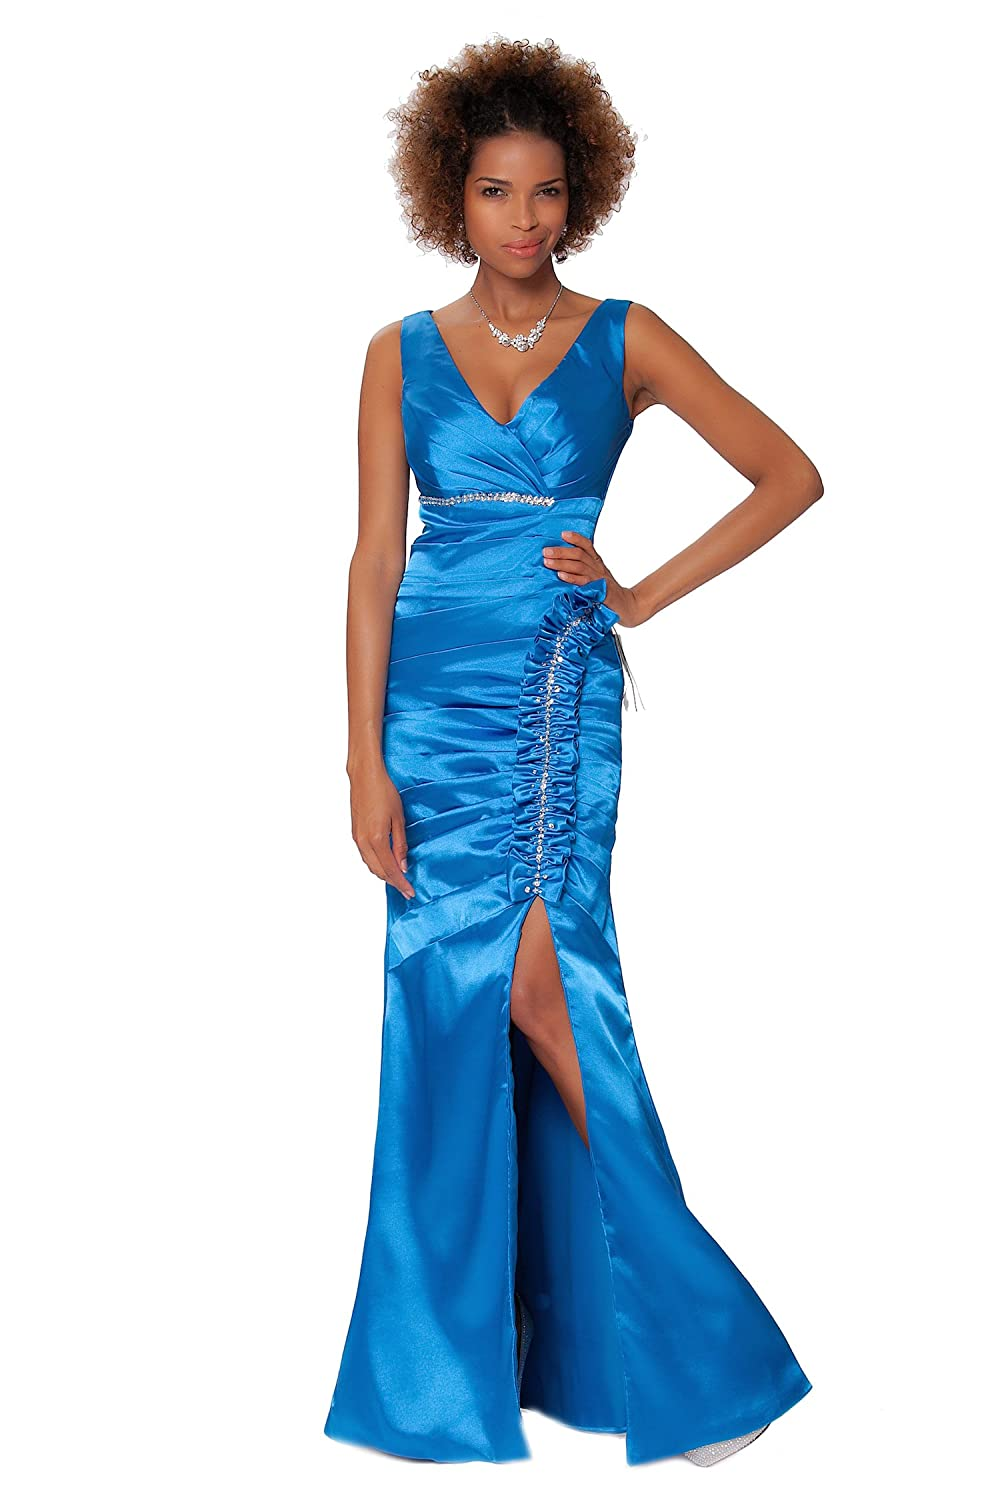 SEXYHER Gorgeous Full Length Bridesmaids Formal Evening Dress - EDJ1576